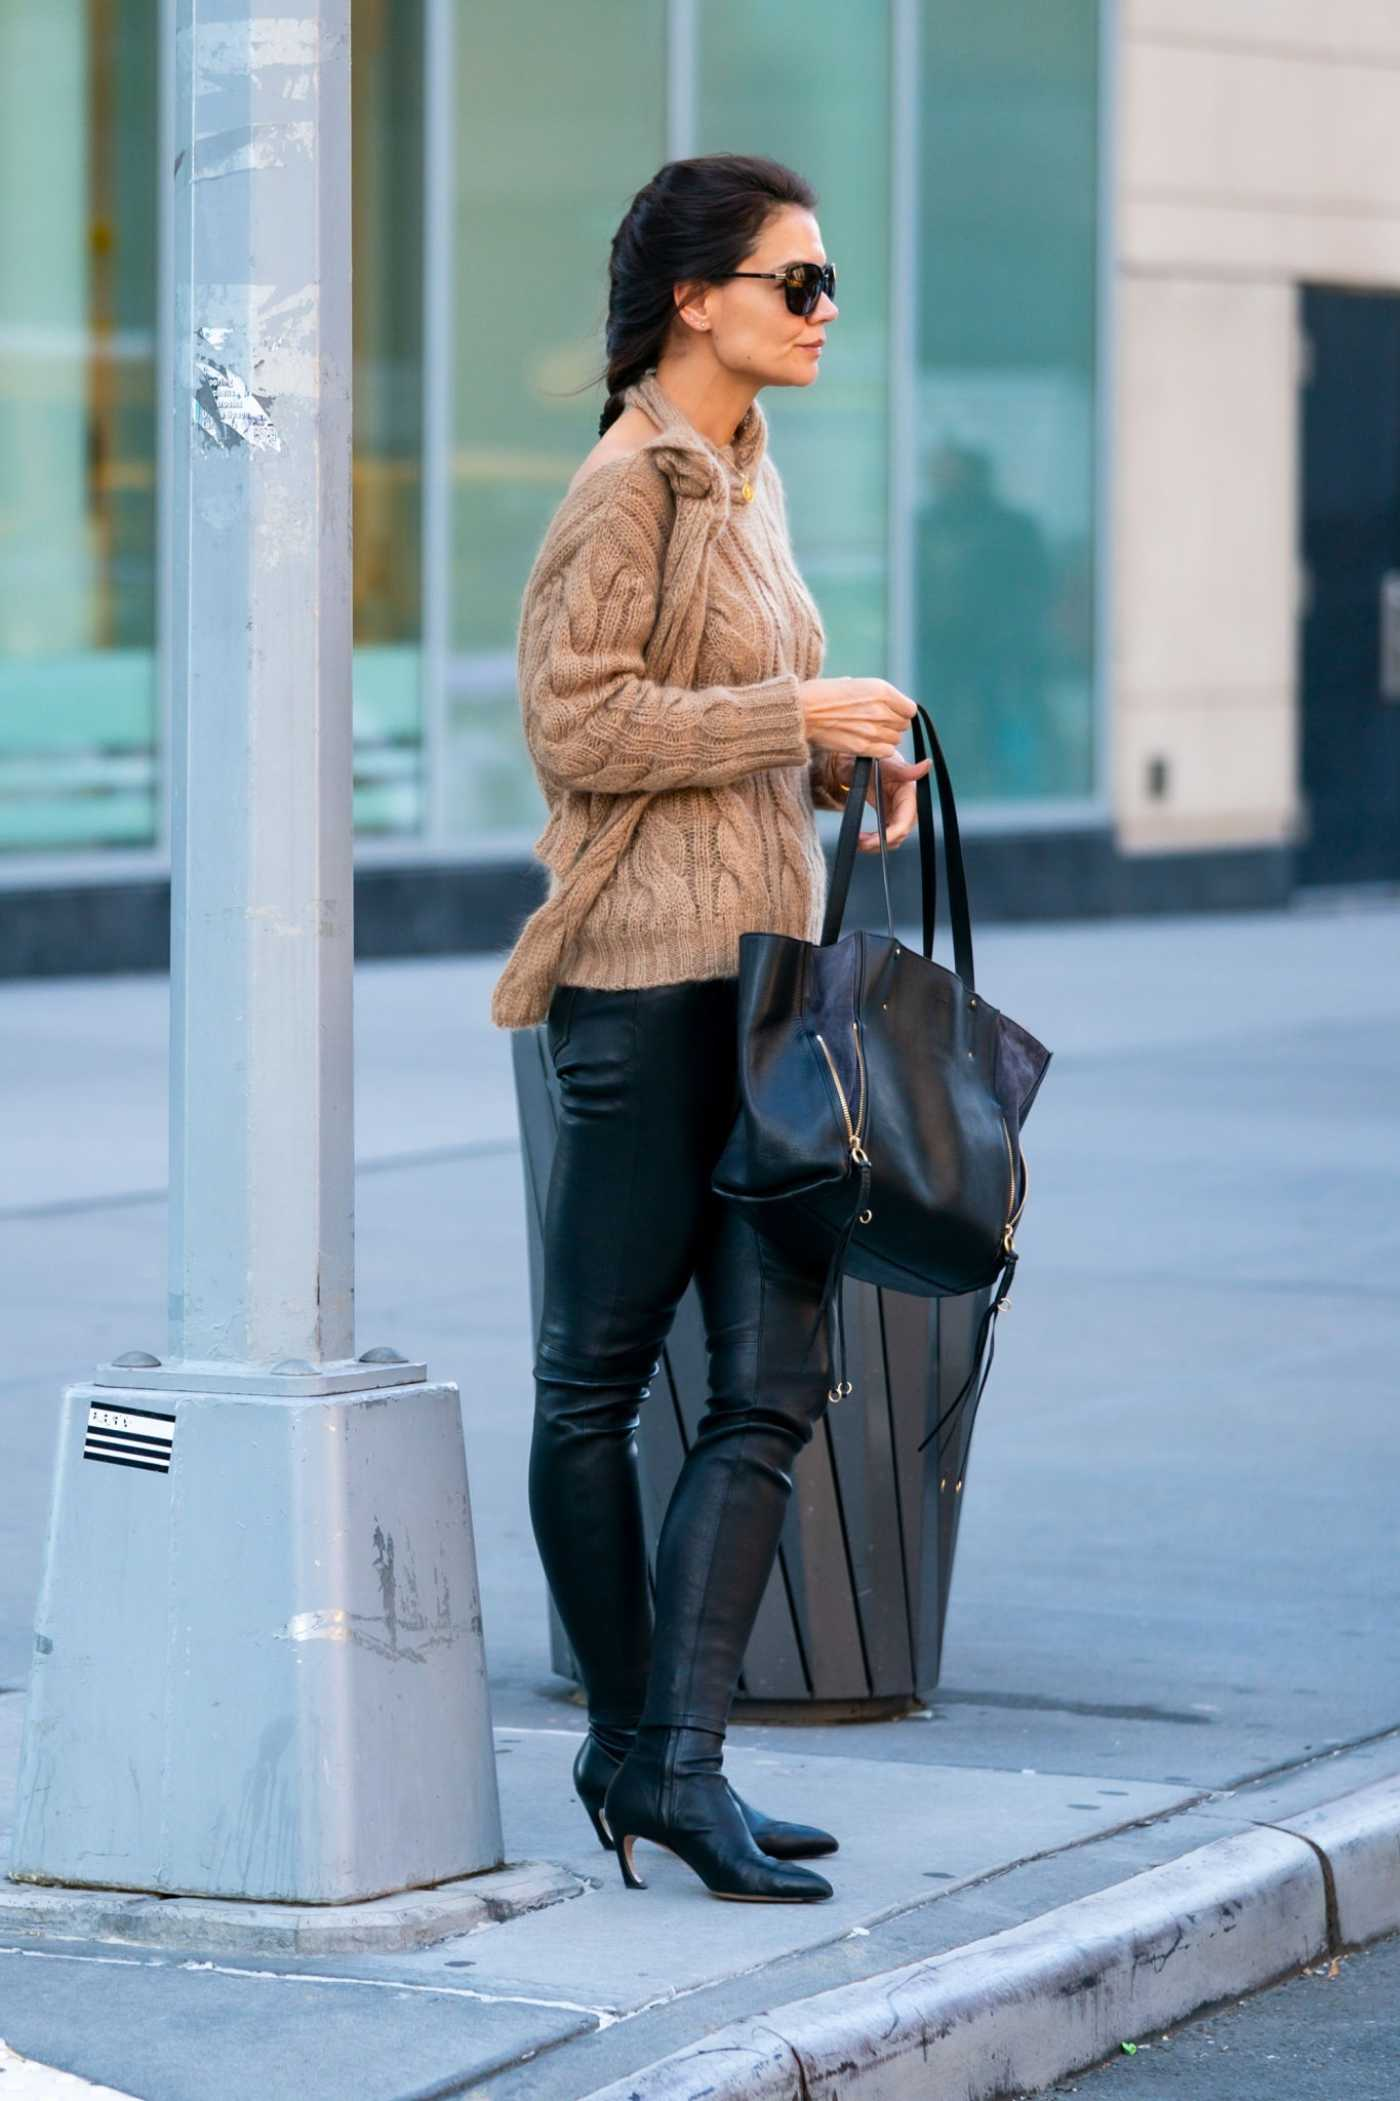 Katie Holmes in a Beige Sweater Was Seen Out in Midtown New York 10/24/2019